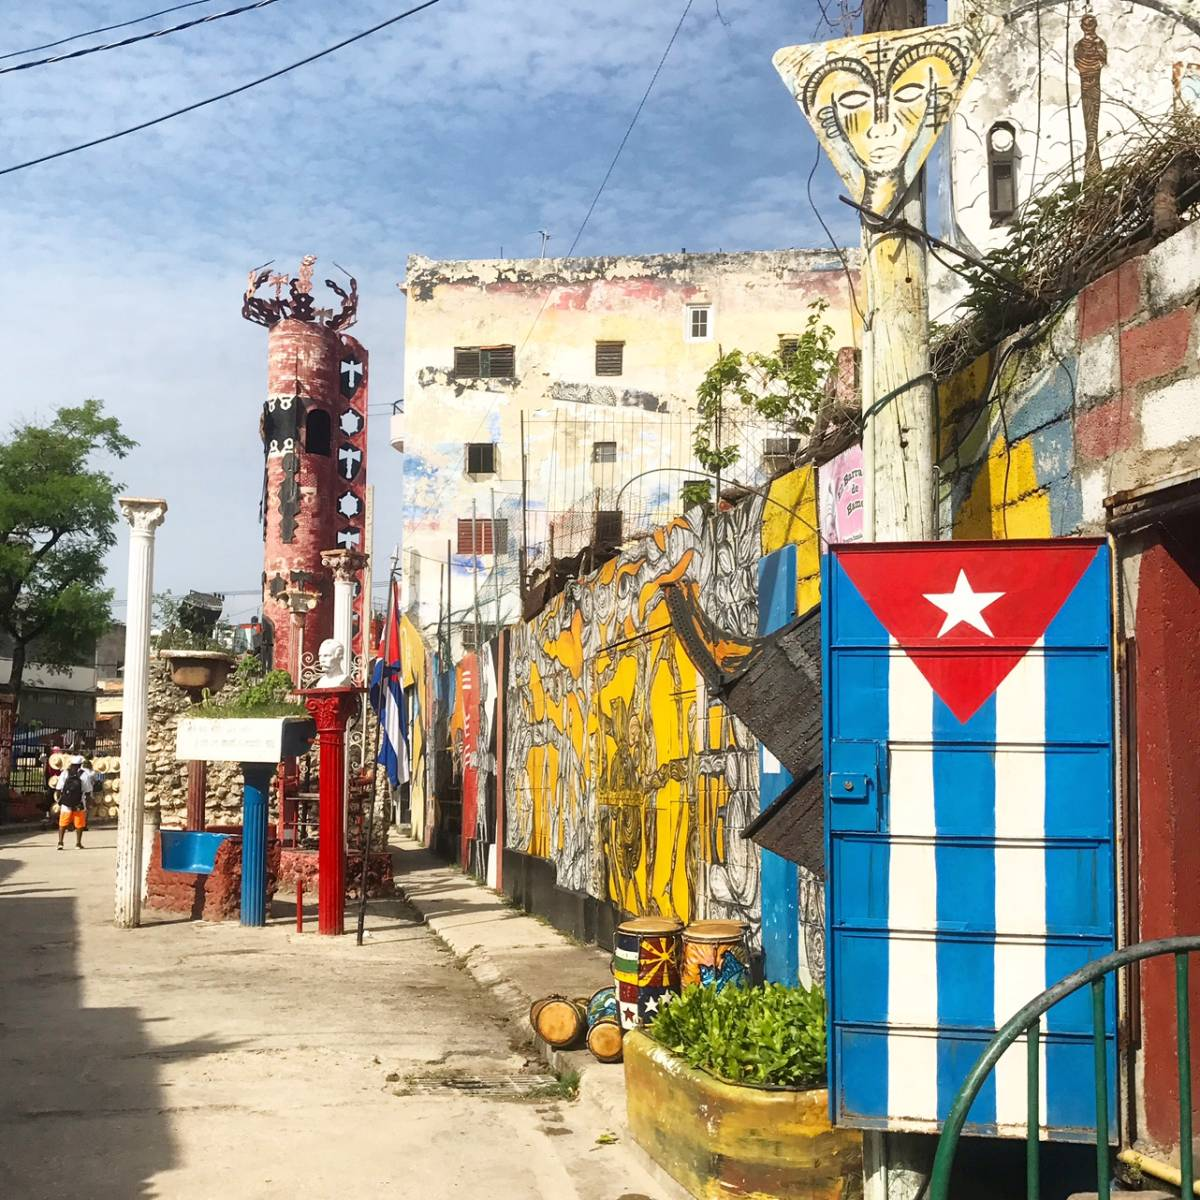 What You Need to Know Before Traveling to Havana, Cuba as an American